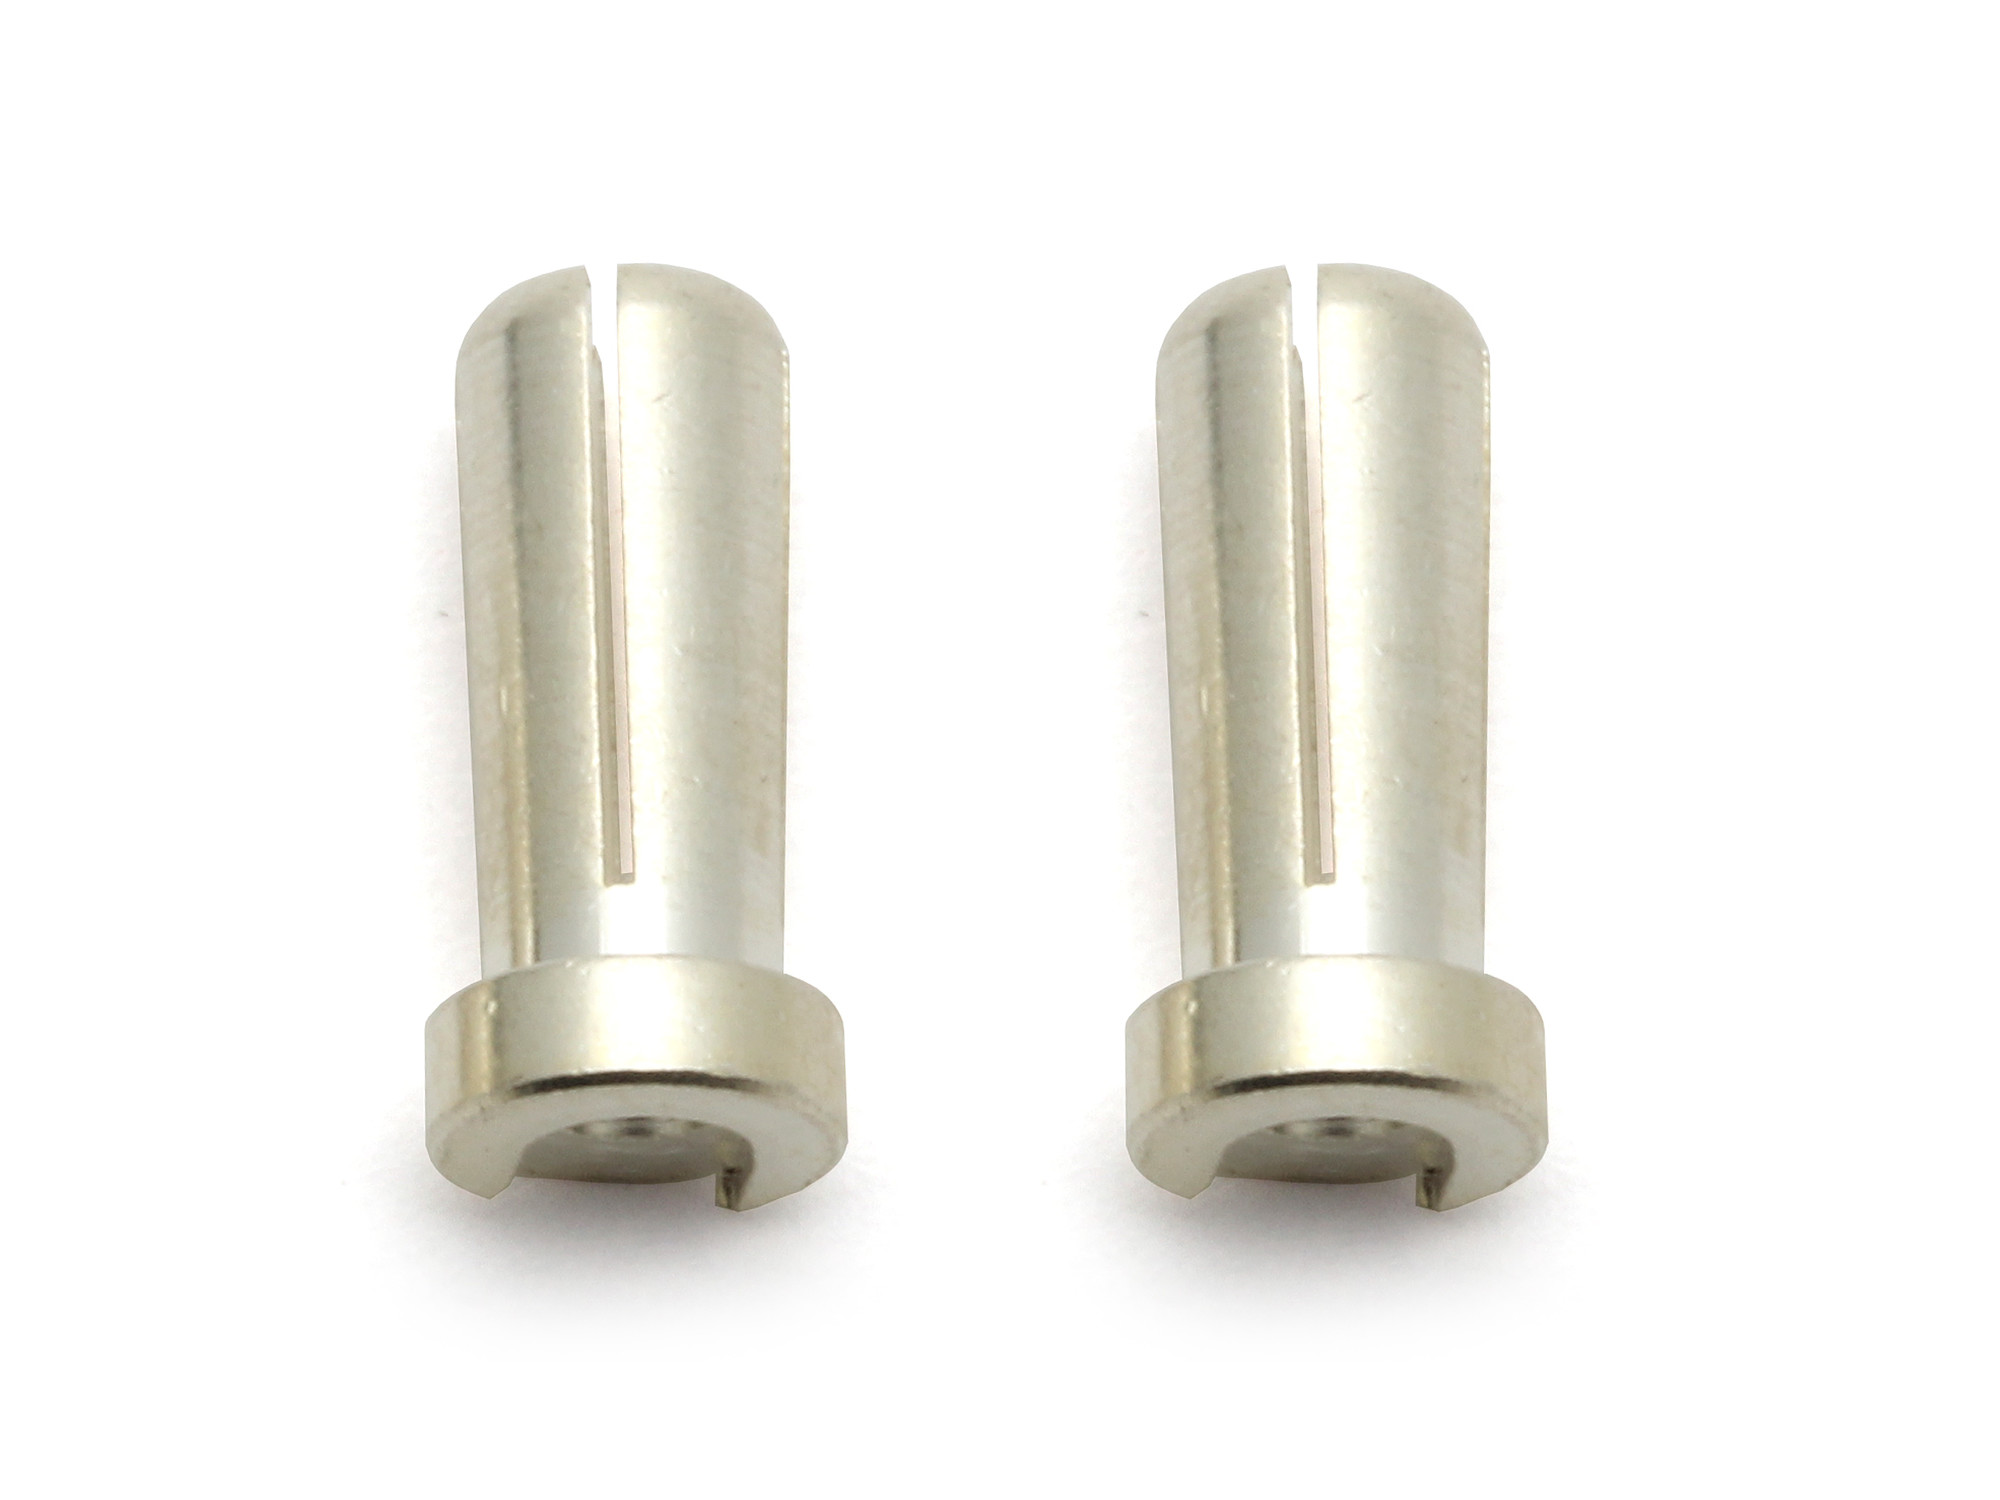 Detail Produit Reedy 645 Low-Profile Bullet Connectors, 5x14 mm, qty 2